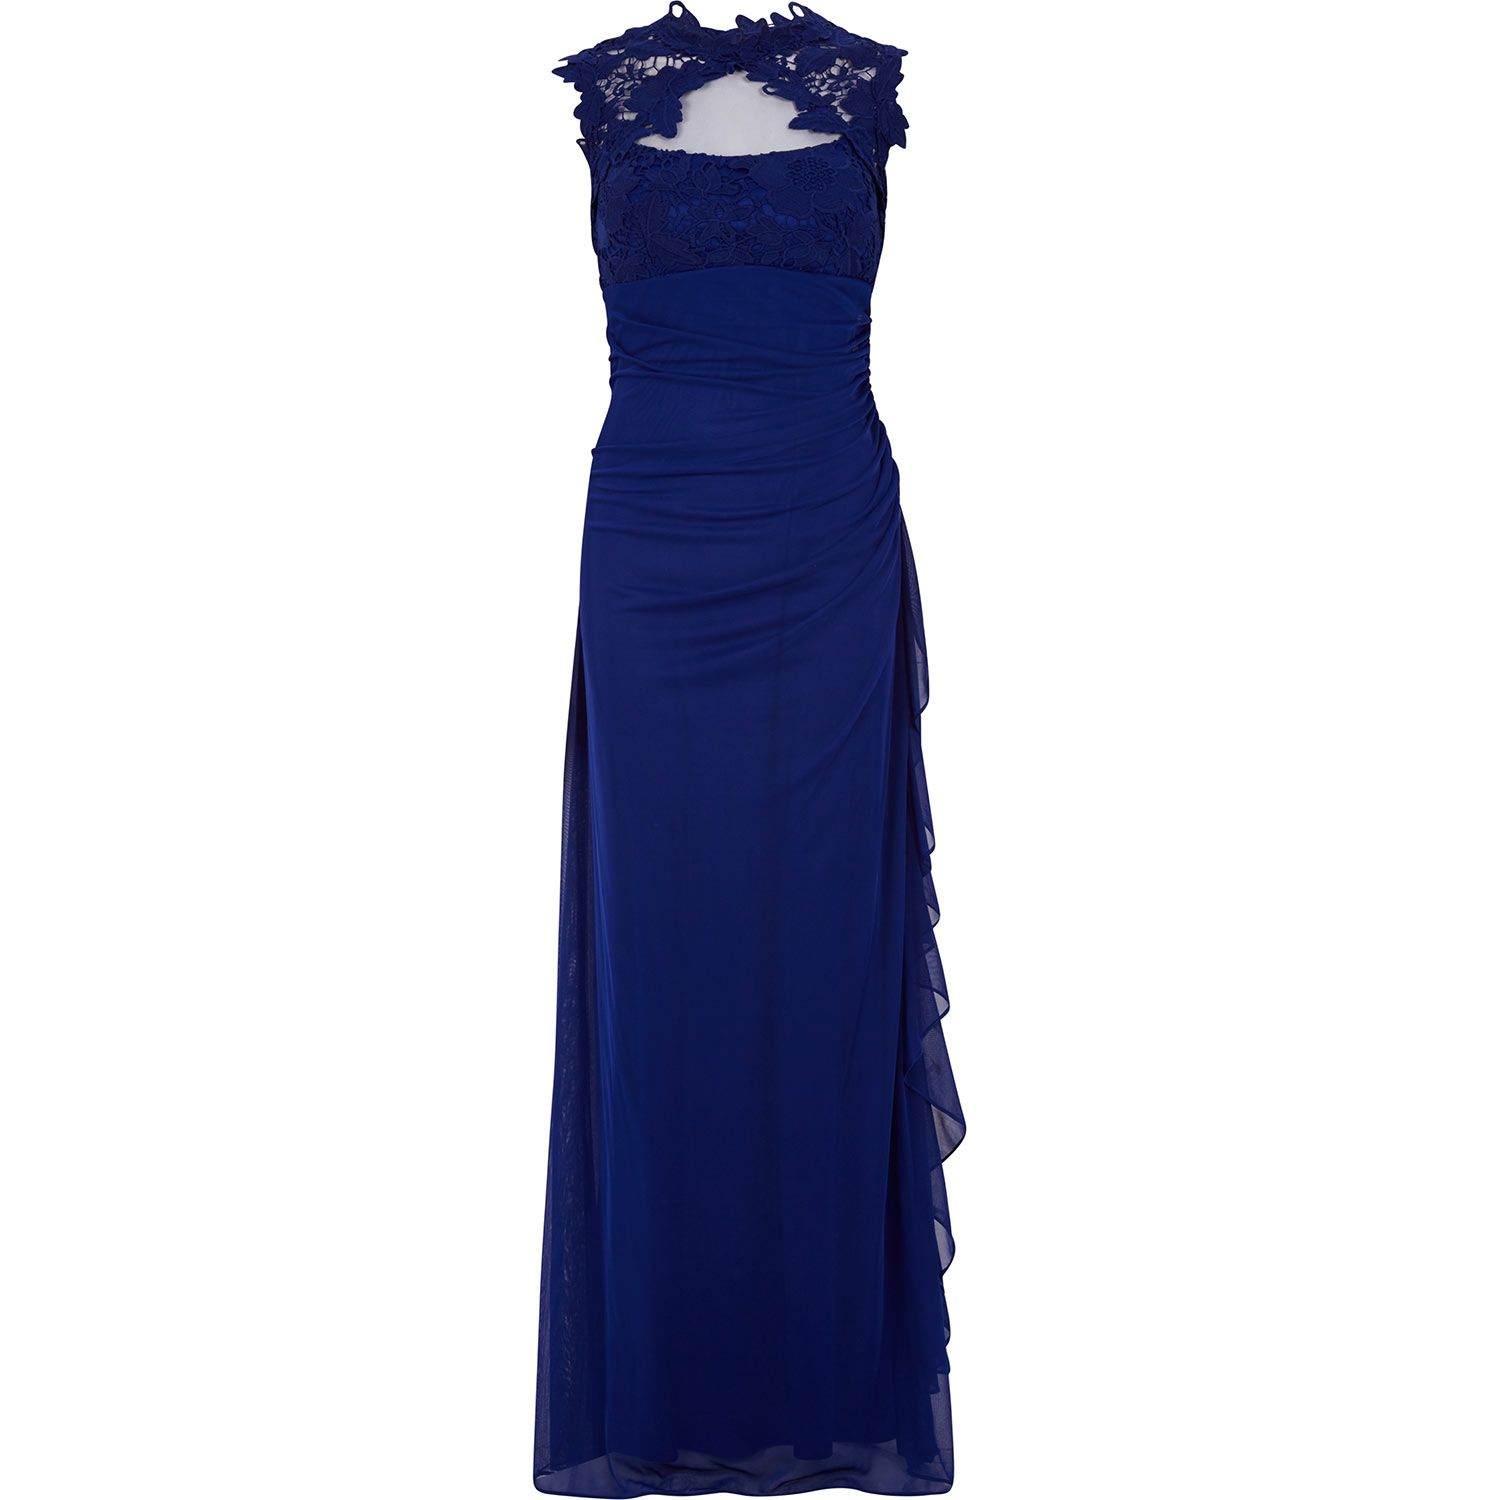 Betsy Adam Cobalt Lace Illusion Gown